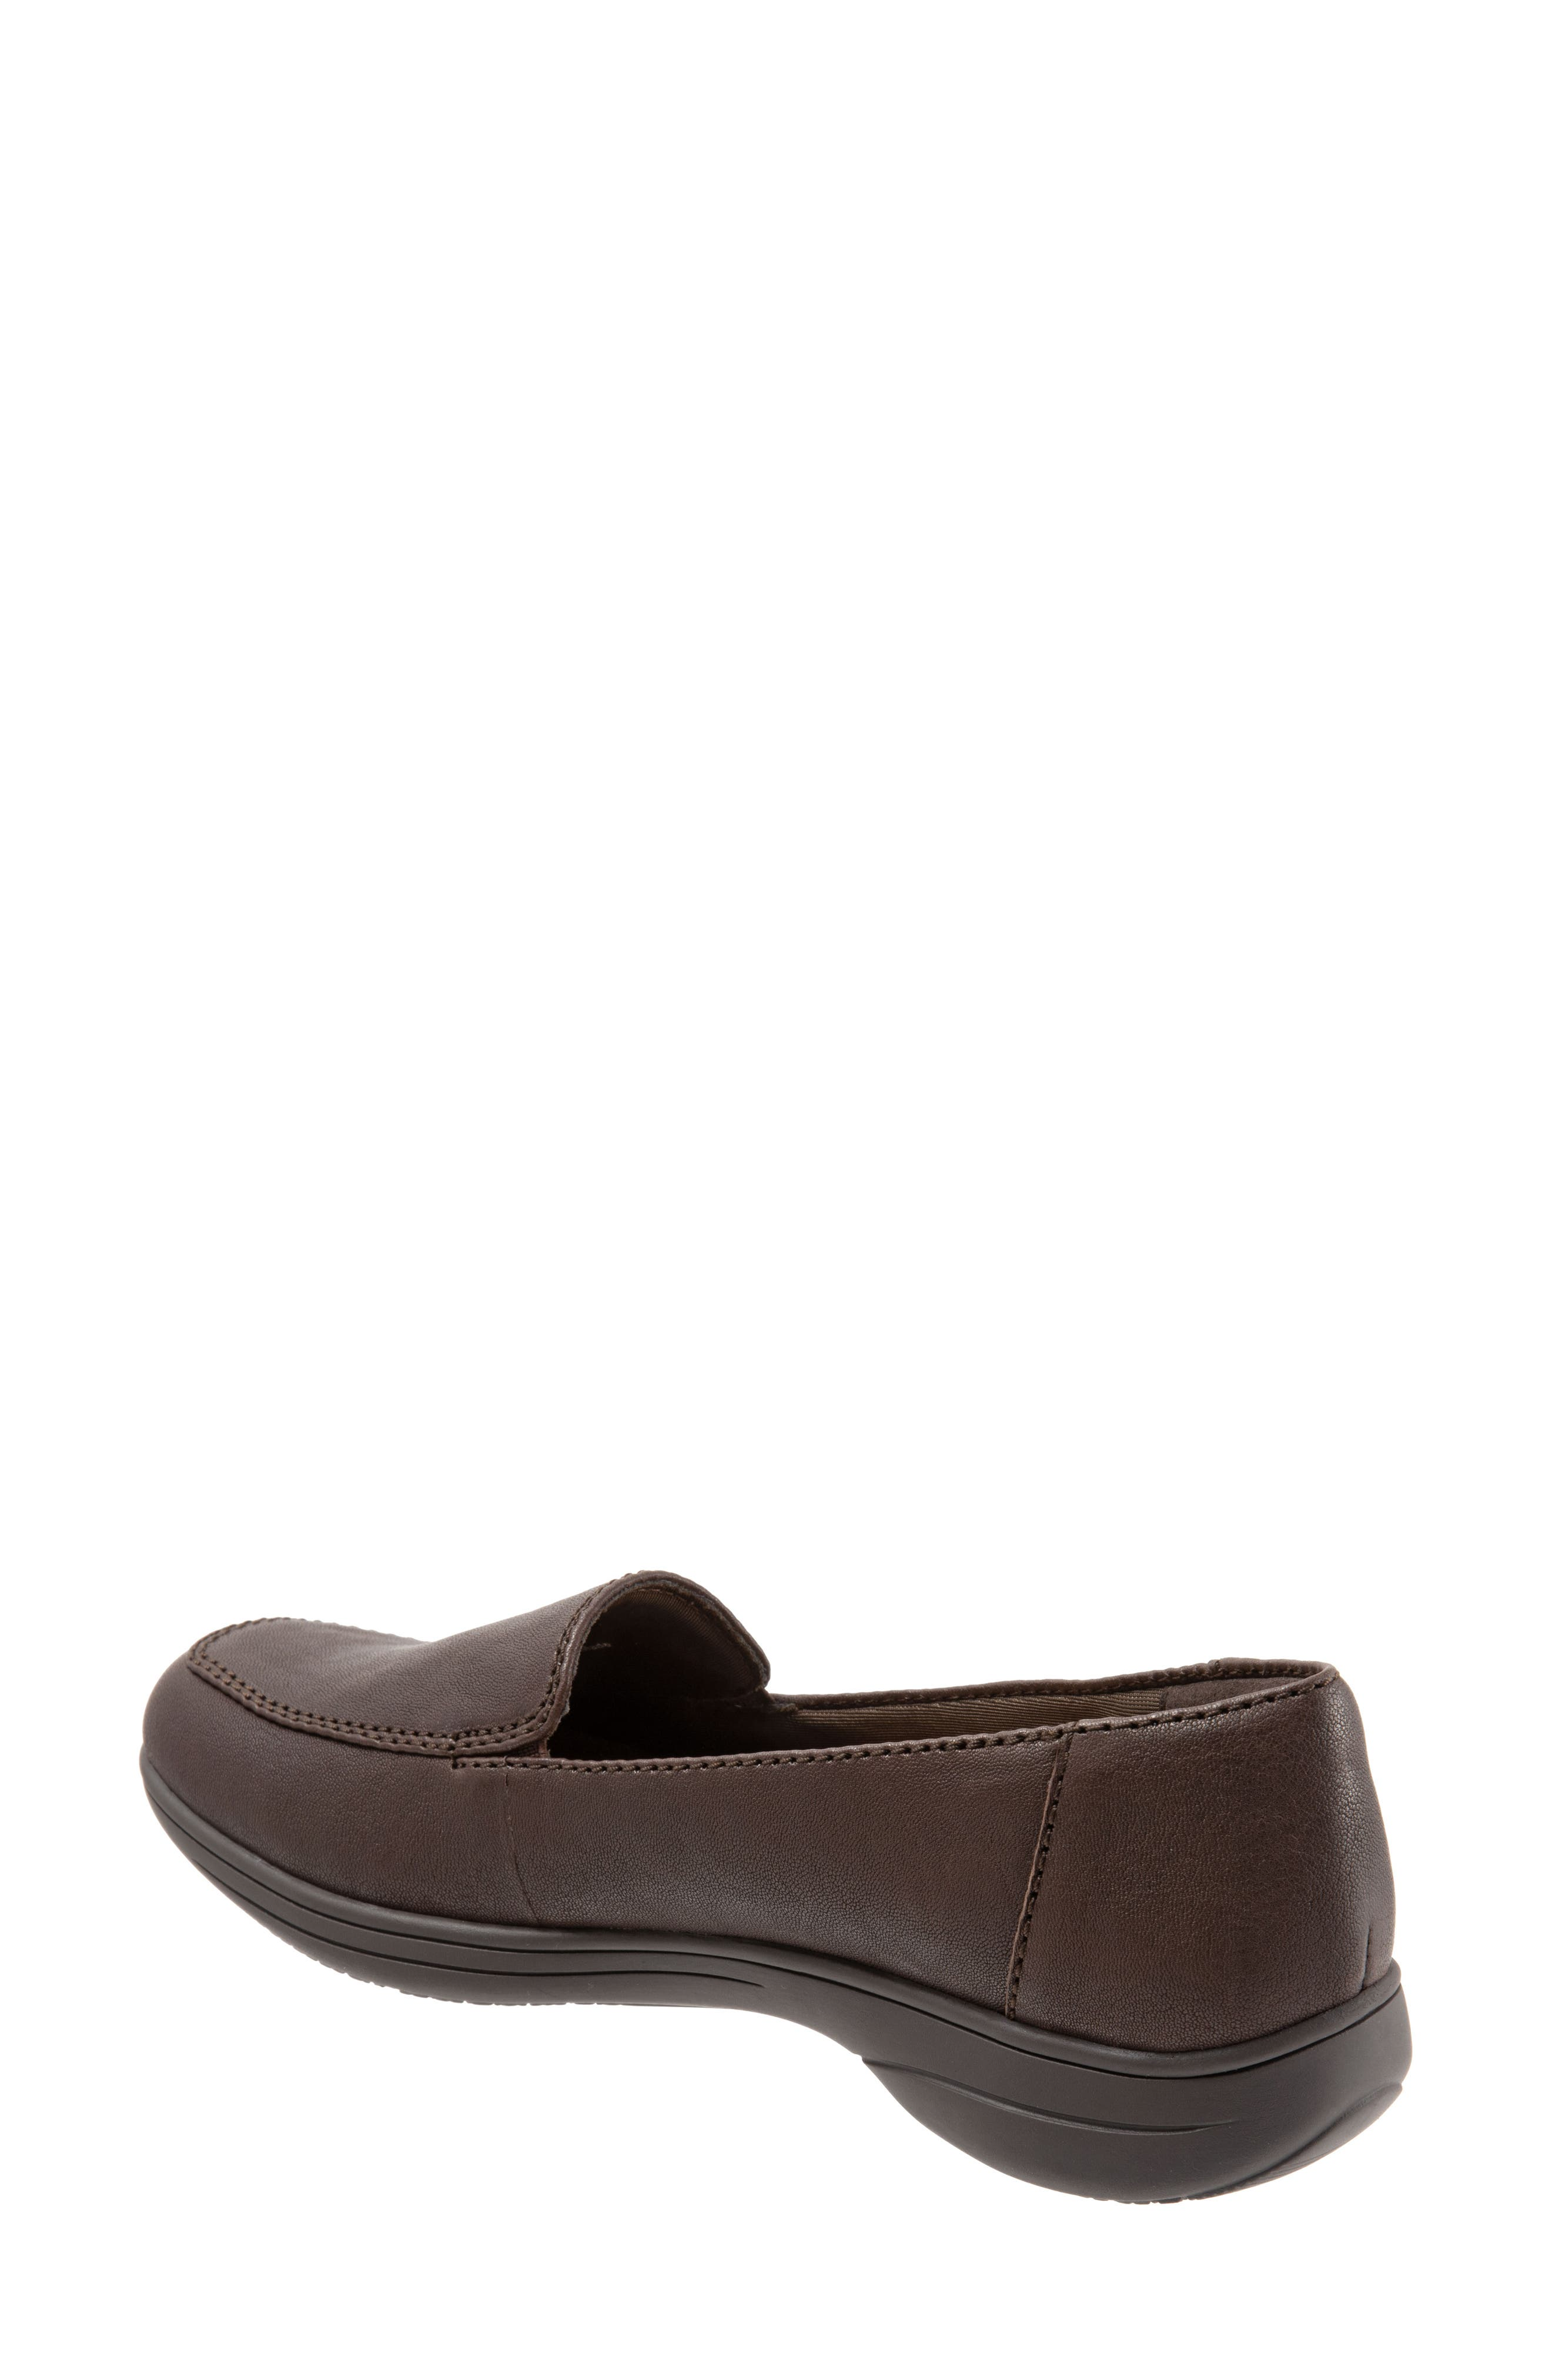 Jacob Loafer,                             Alternate thumbnail 2, color,                             DARK BROWN LEATHER